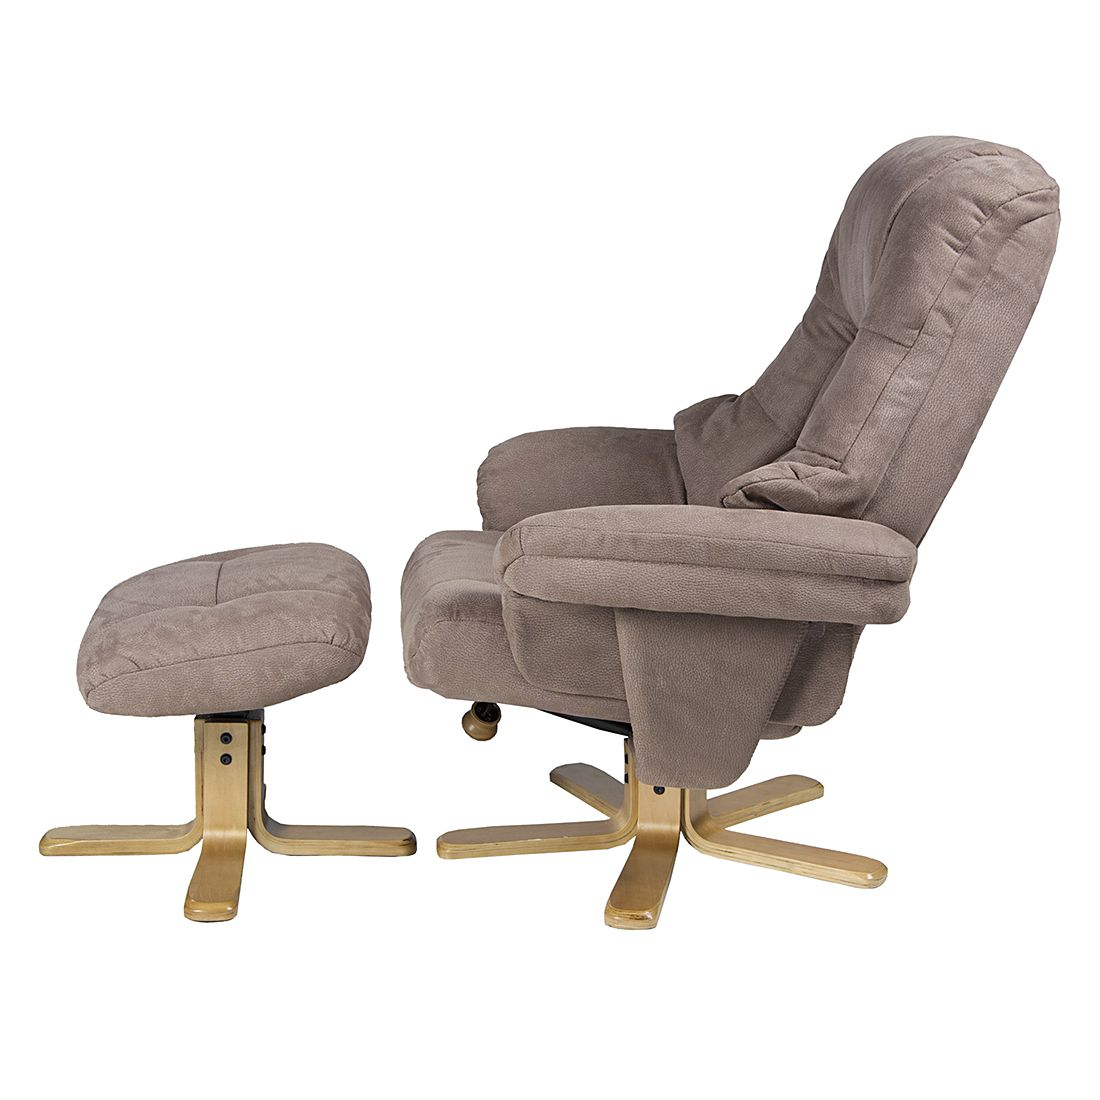 Duo collection relaxsessel lacanau tv sessel fernsehsessel for Relaxsessel mit hocker microfaser